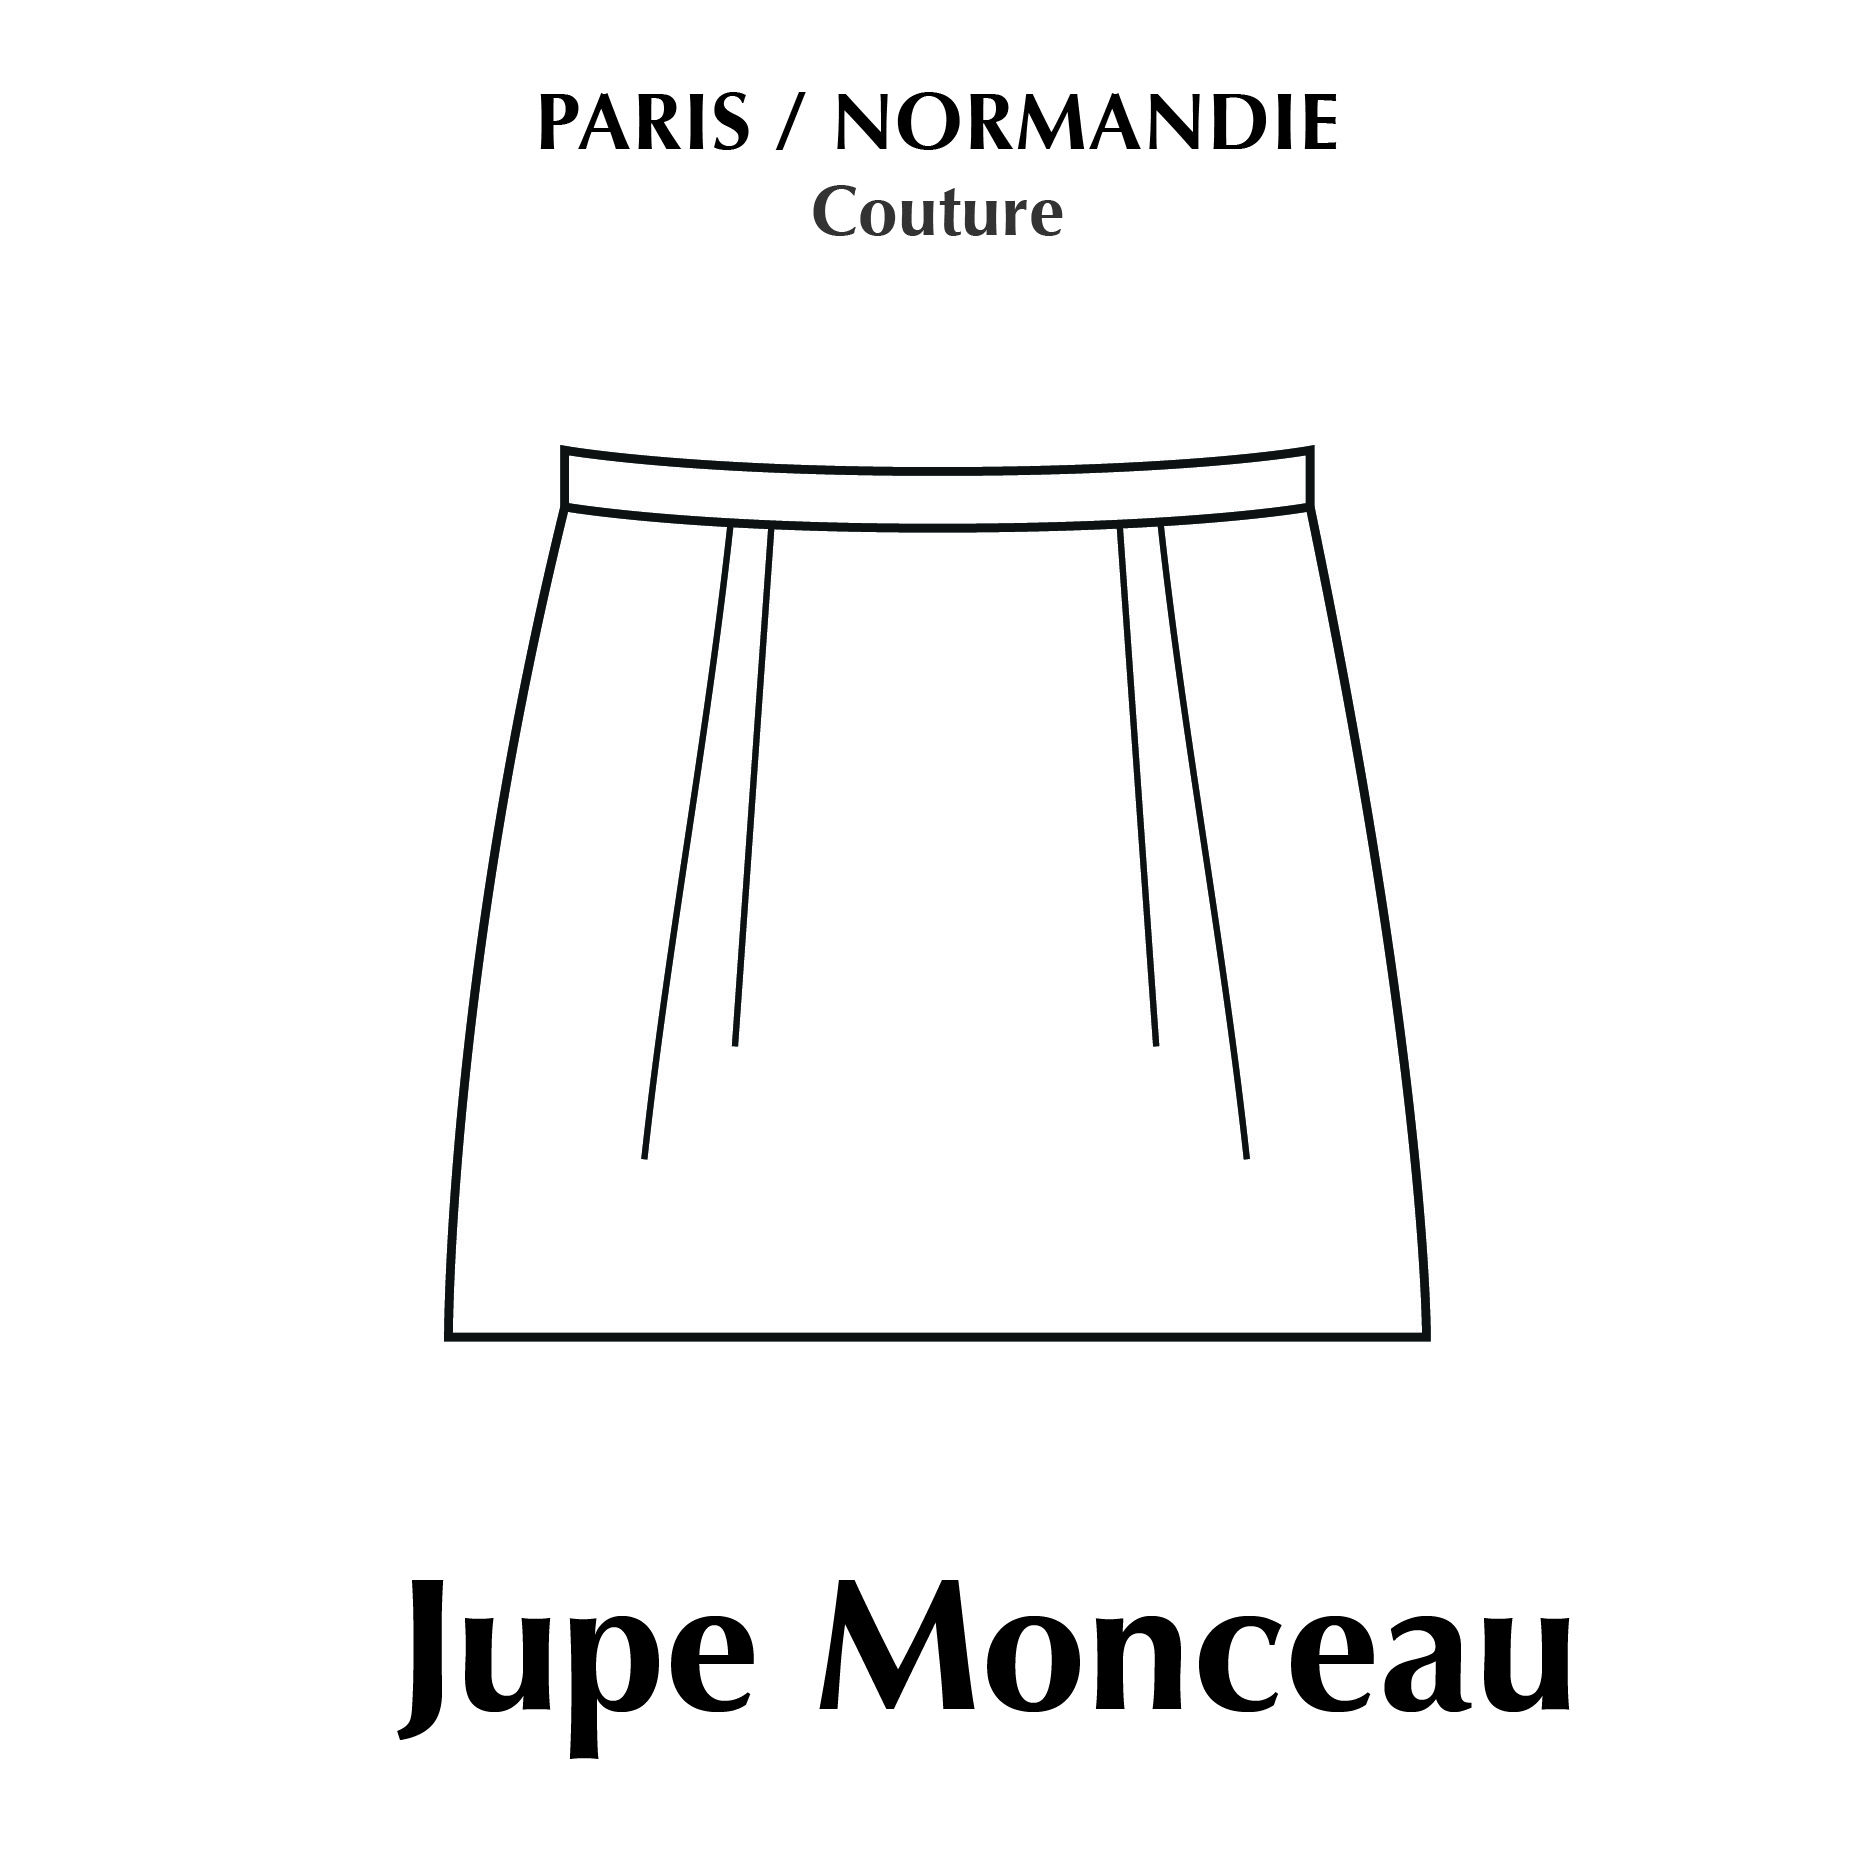 PNCOUTURE JUPE MONCEAU | Jupe, Jupe diy, Couture